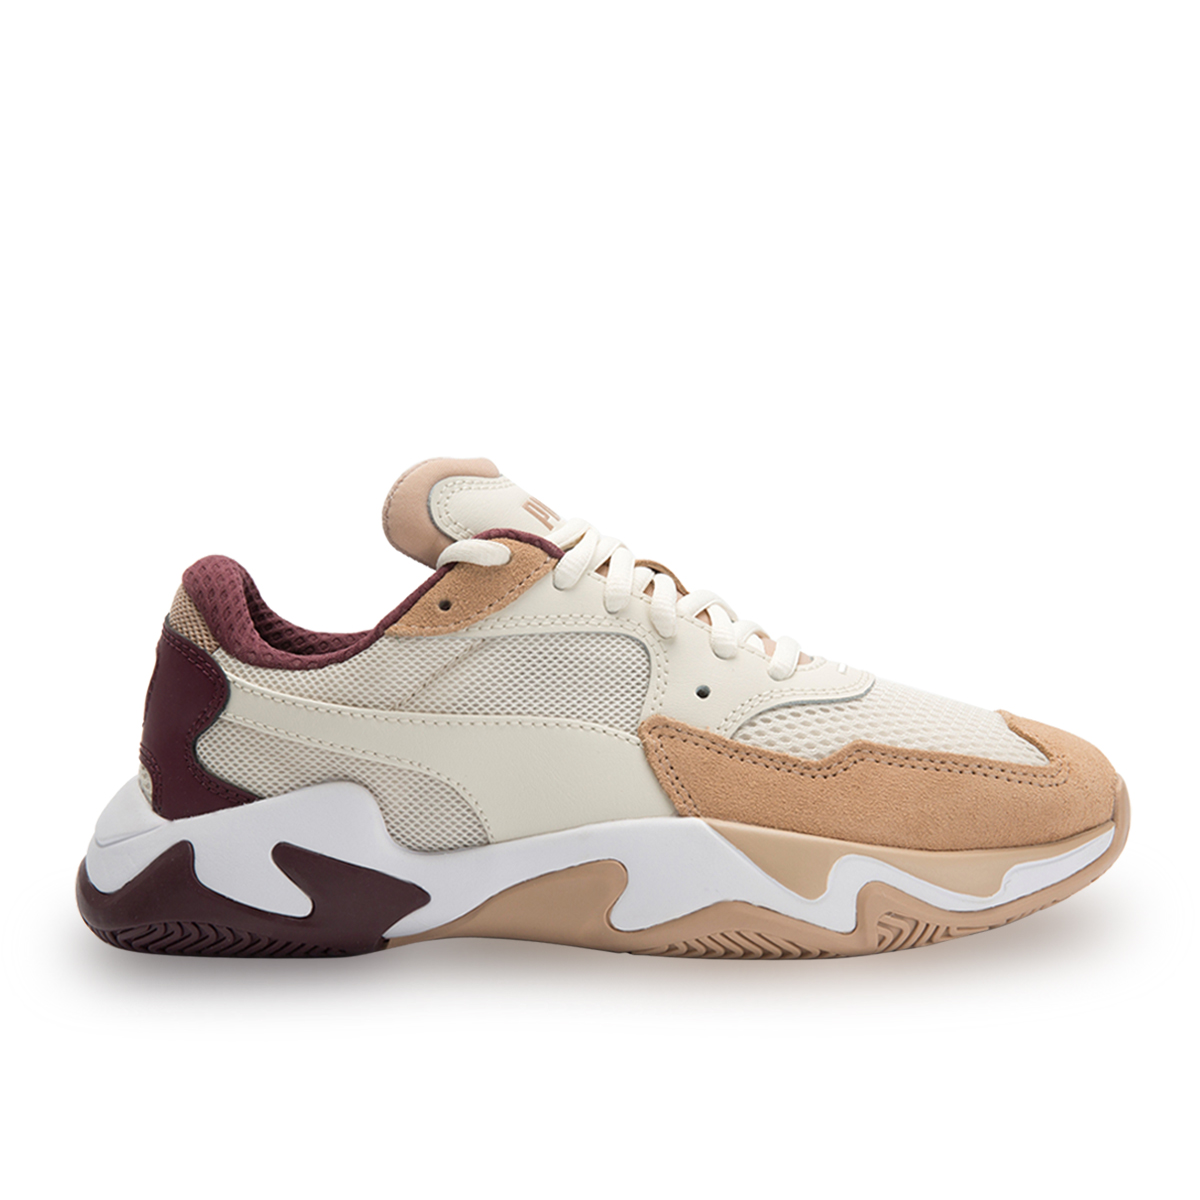 Puma Storm Origin - Women's Shoes